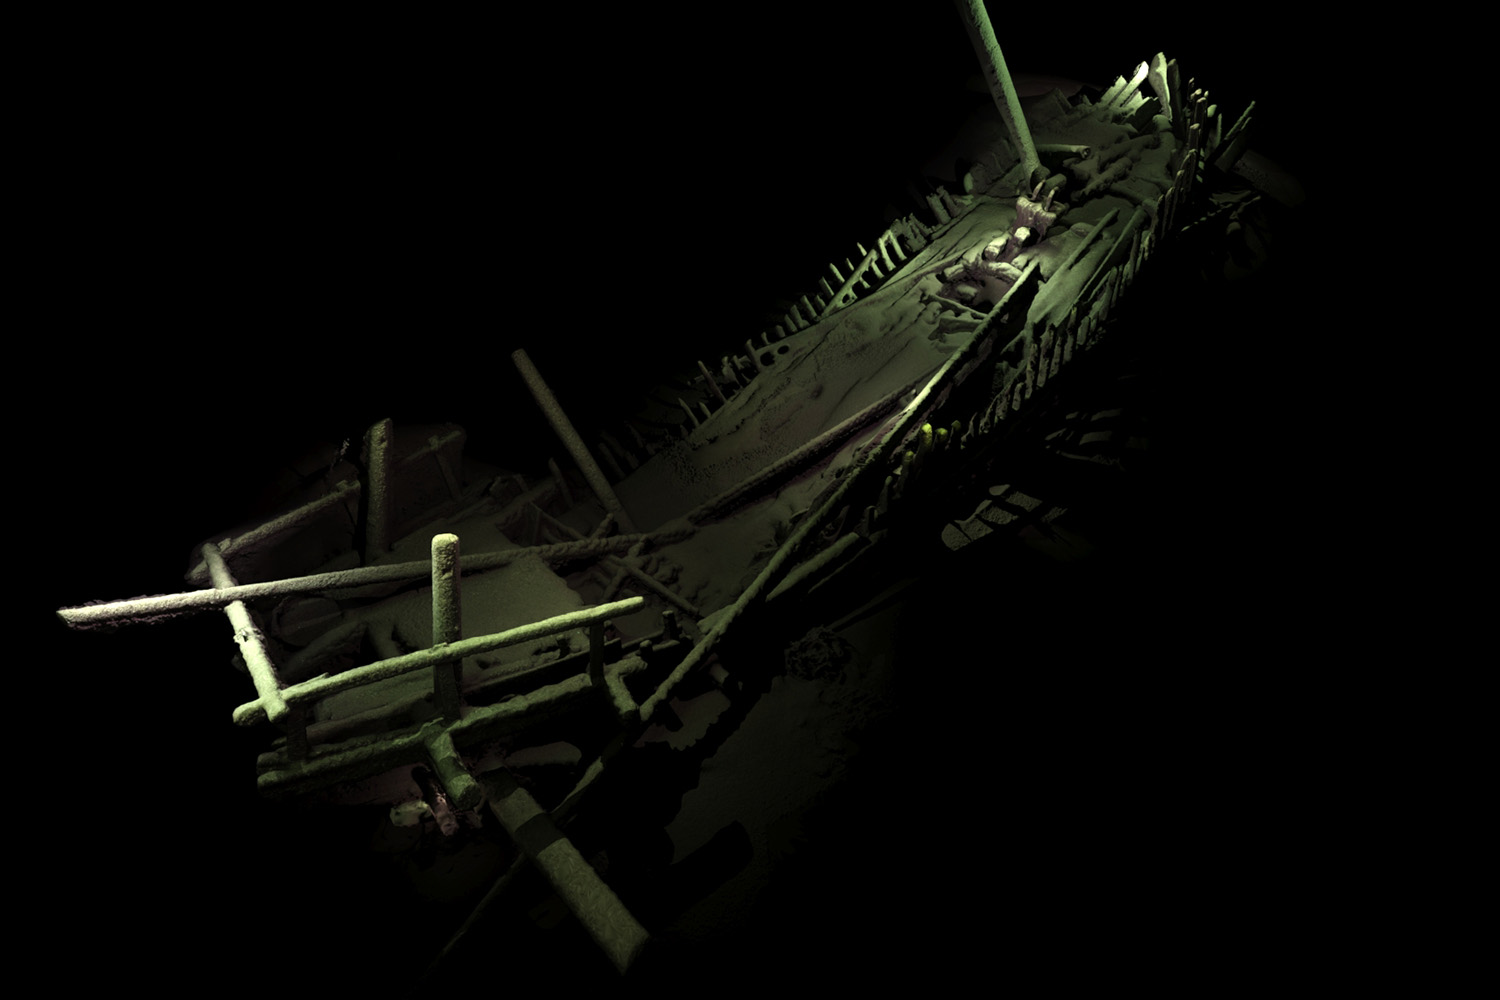 Black Sea Project Discovers Unseen Medieval Ship